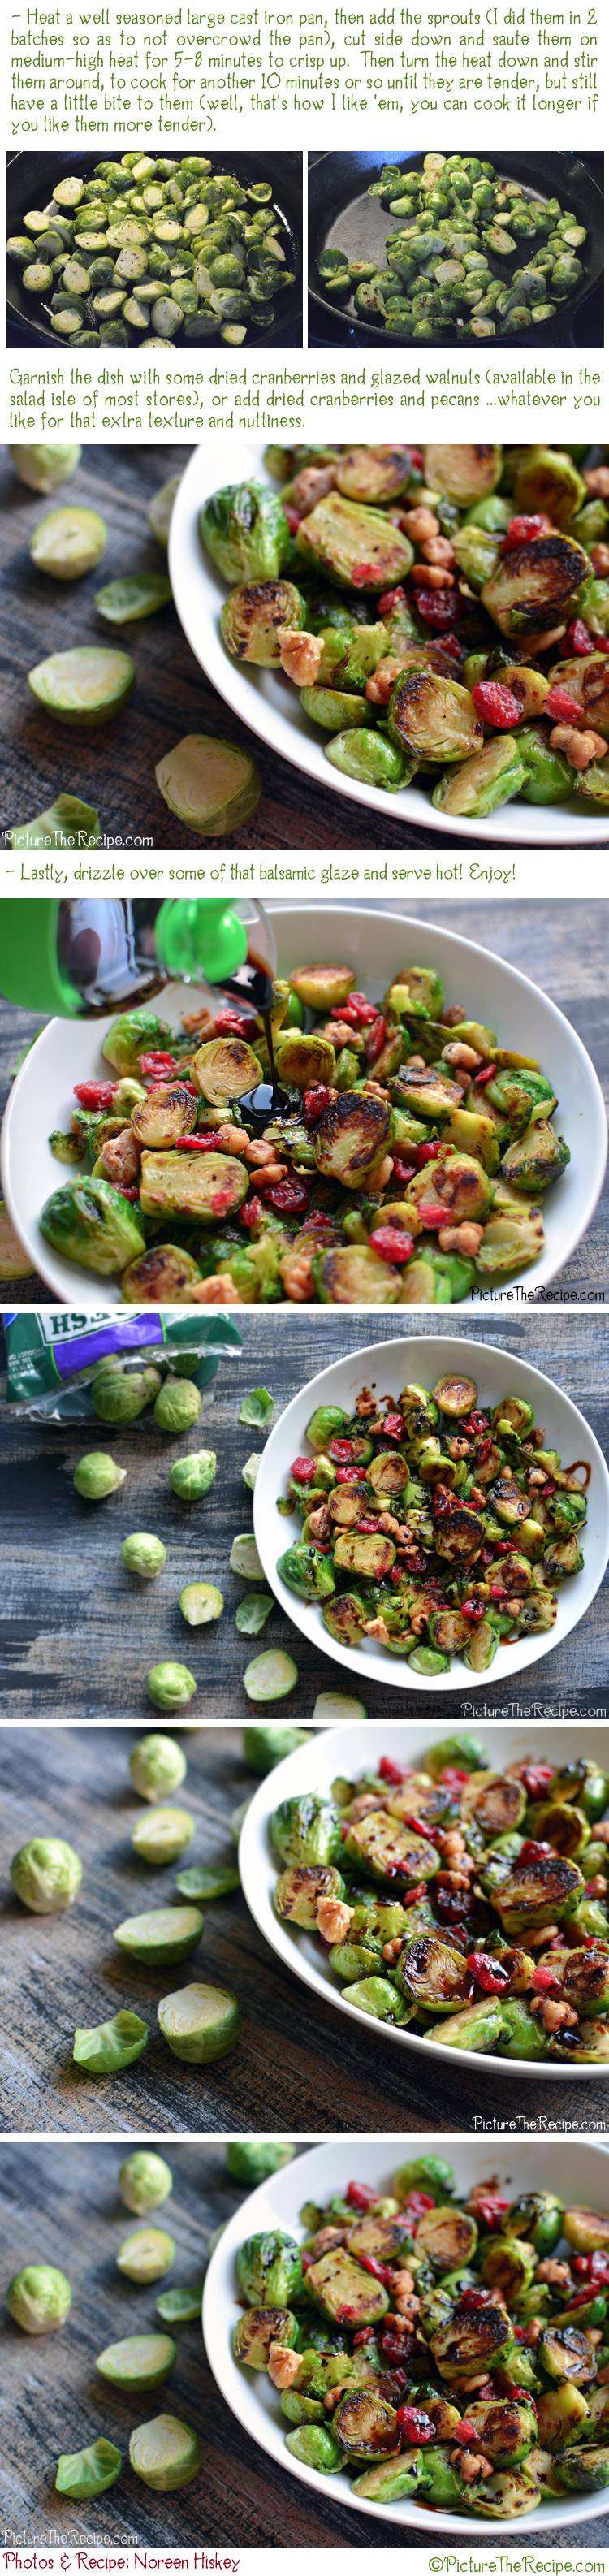 Brussels Sprouts With Cranberries and Balsamic Drizzle Recipe - Part2